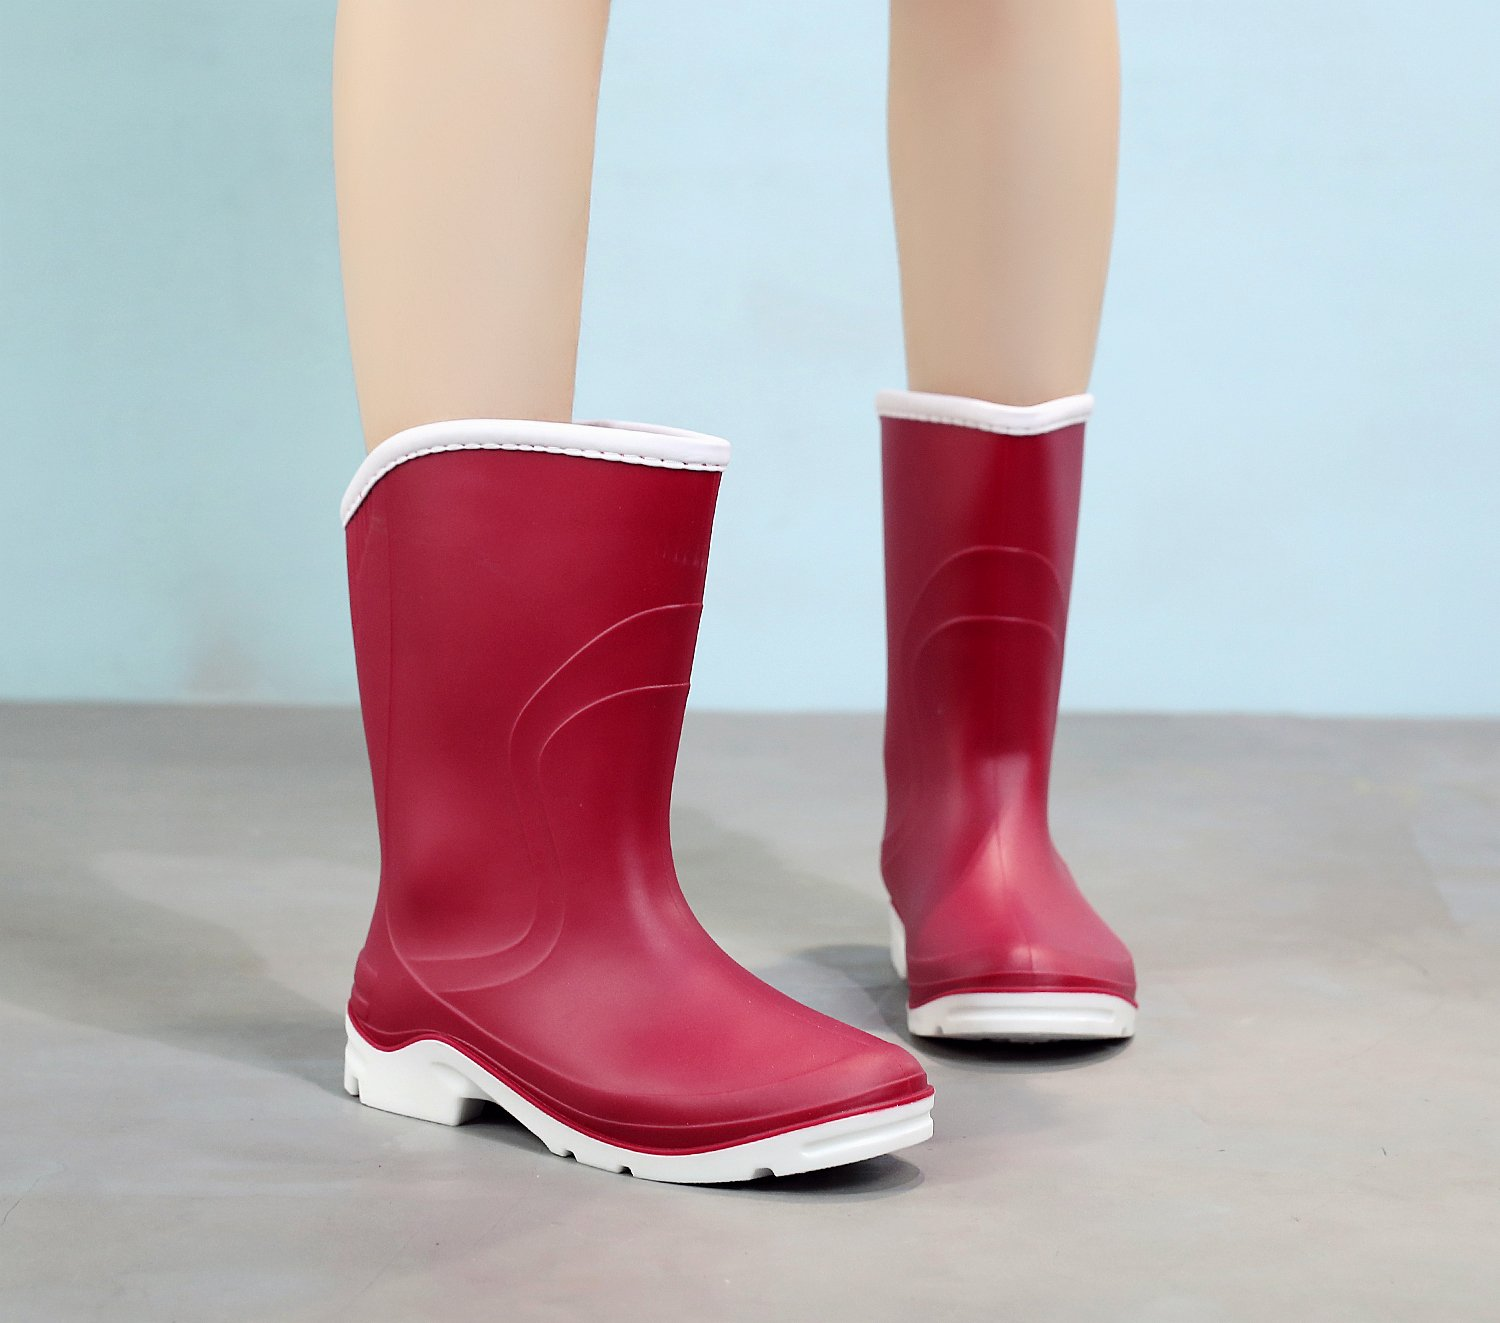 Kontai Women Half Calf Ankle Rubber Rainboots 2 Color Waterproof Boots for Garden Rain Round Toe Rainboots Size 7.5 by Kontai (Image #5)